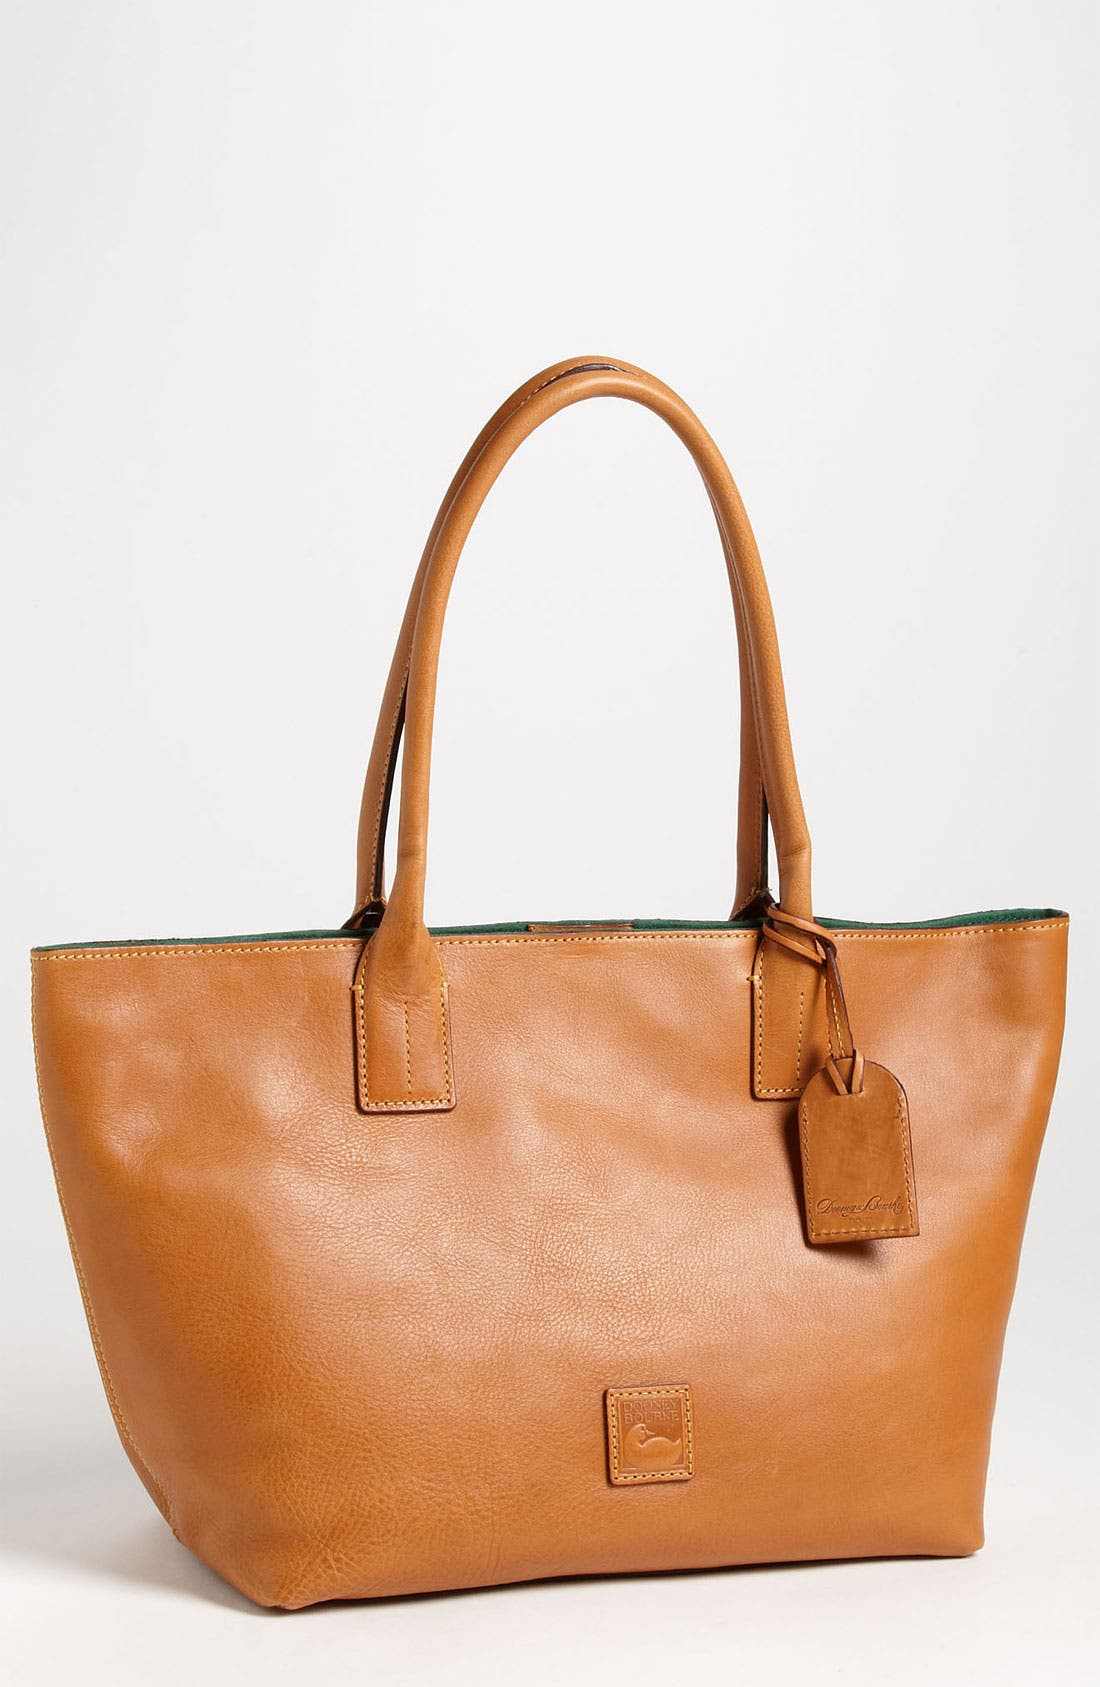 Main Image - Dooney & Bourke 'Russel - Small' Leather Tote